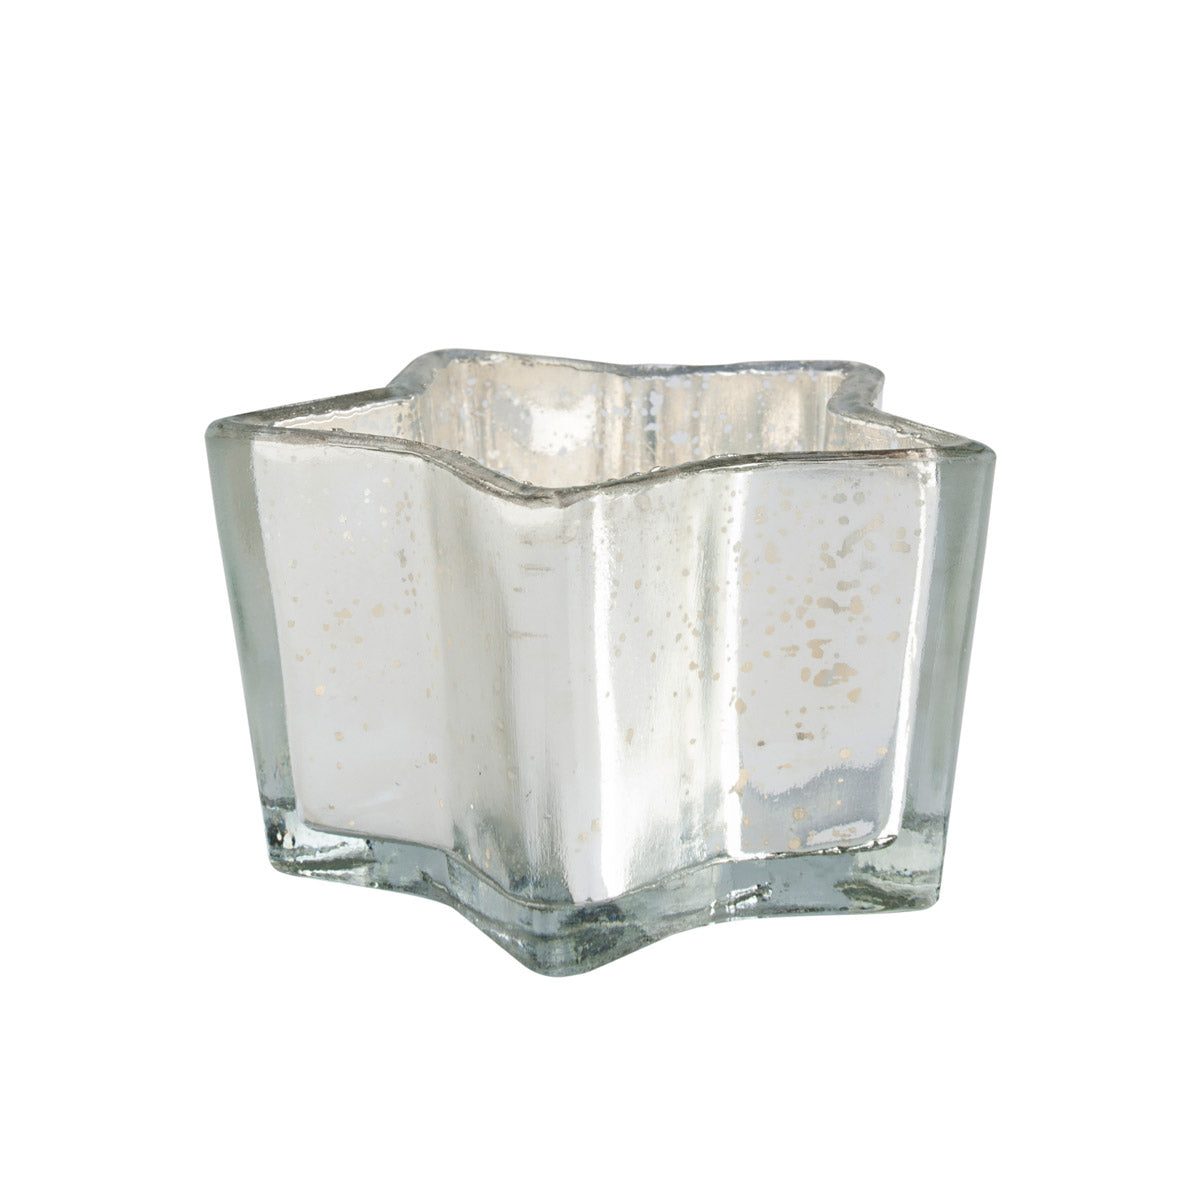 Star Tea Light Holder - Standard